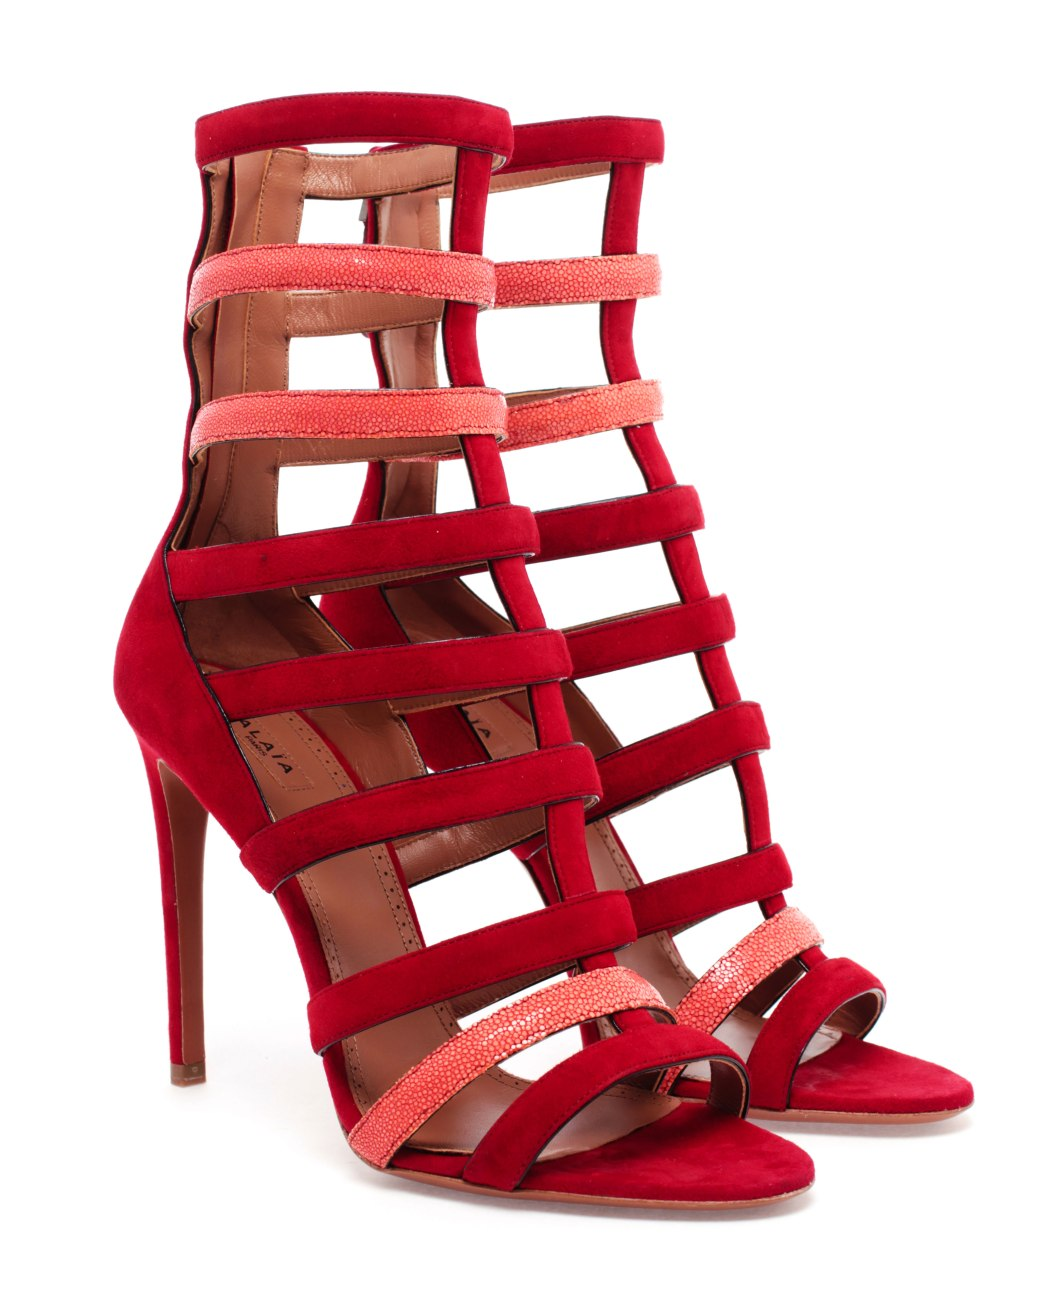 Alaia-Red-Strappy-Sandals_3